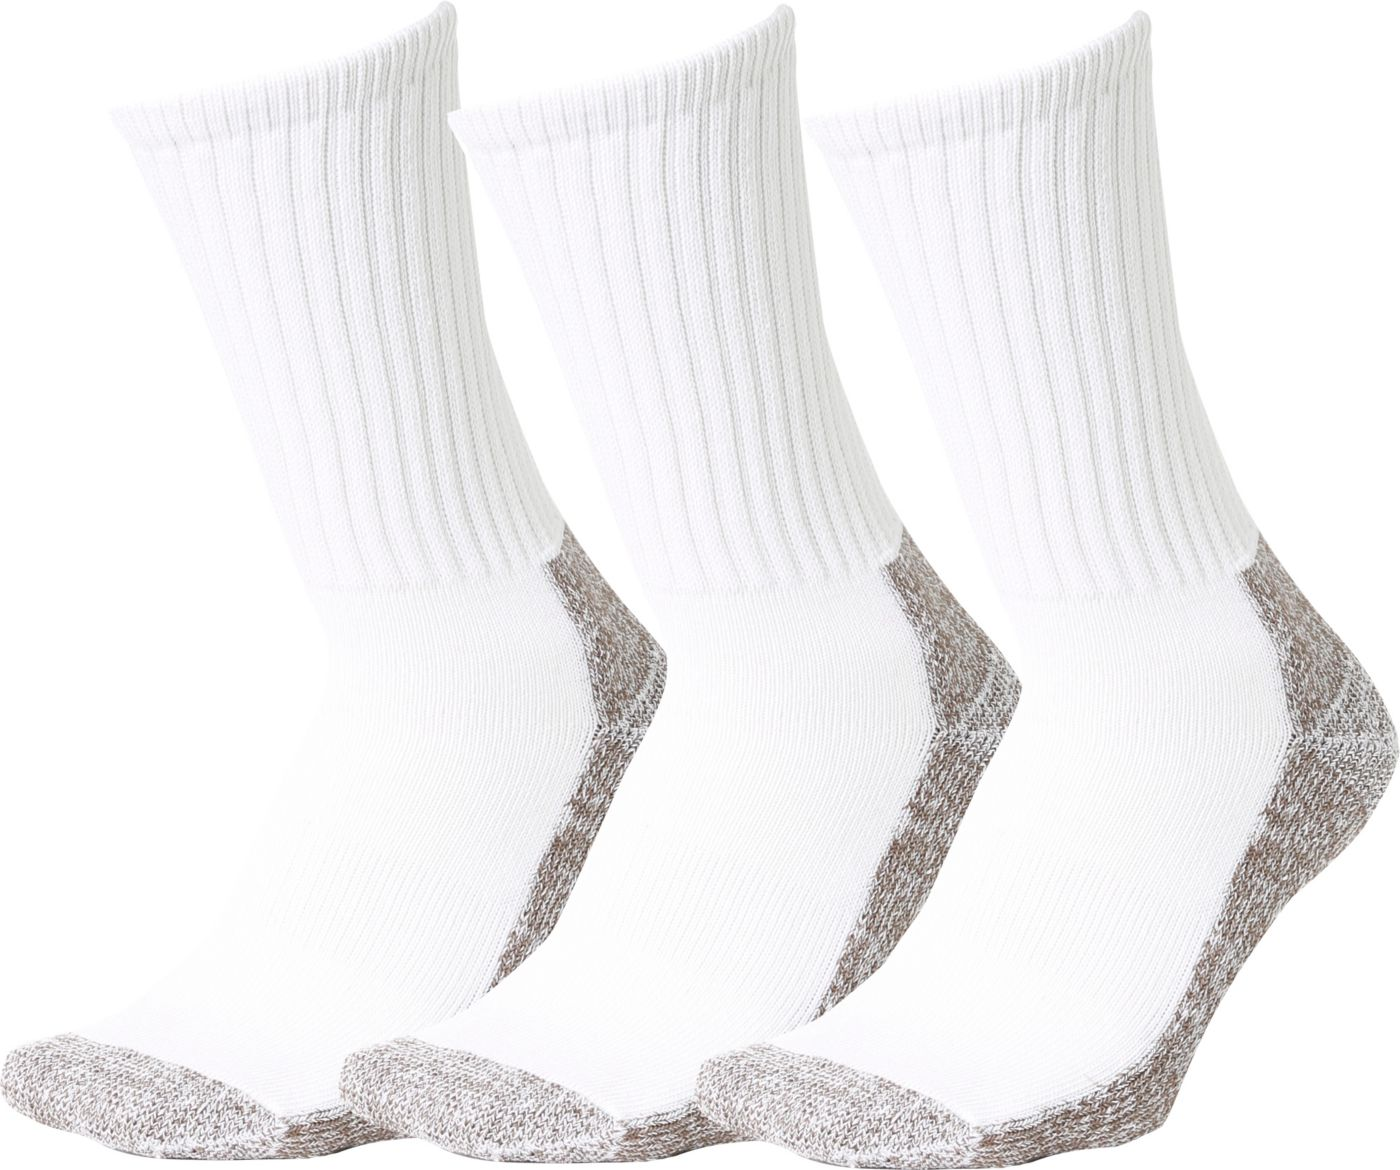 Field & Stream Work Crew Socks 3 Pack